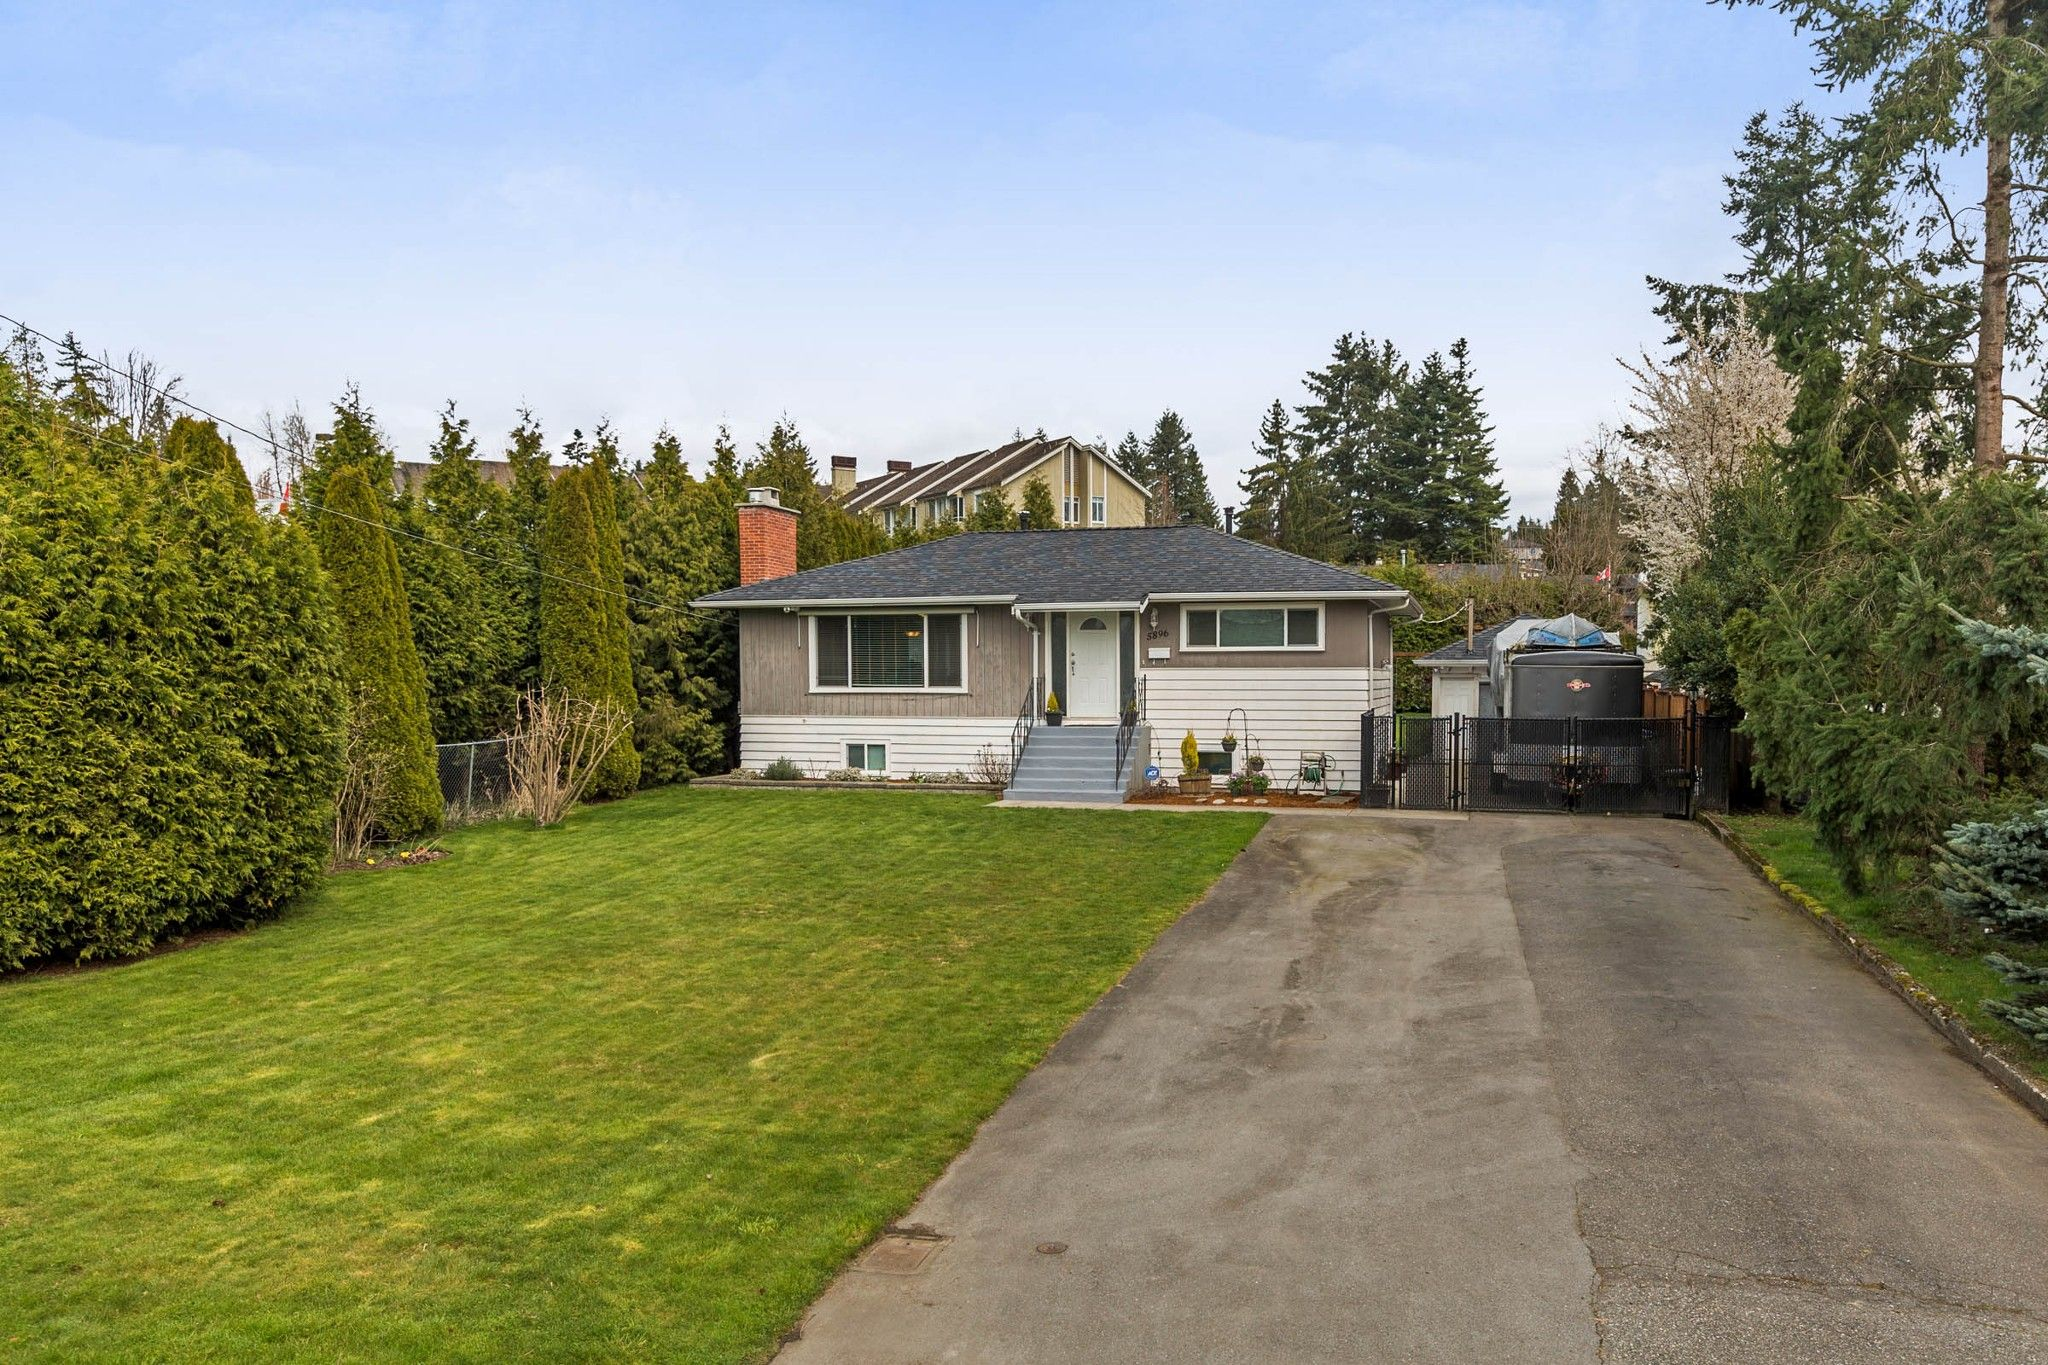 Main Photo: 5896 179 Street in Surrey: Cloverdale BC House for sale (Cloverdale)  : MLS®# R2252561